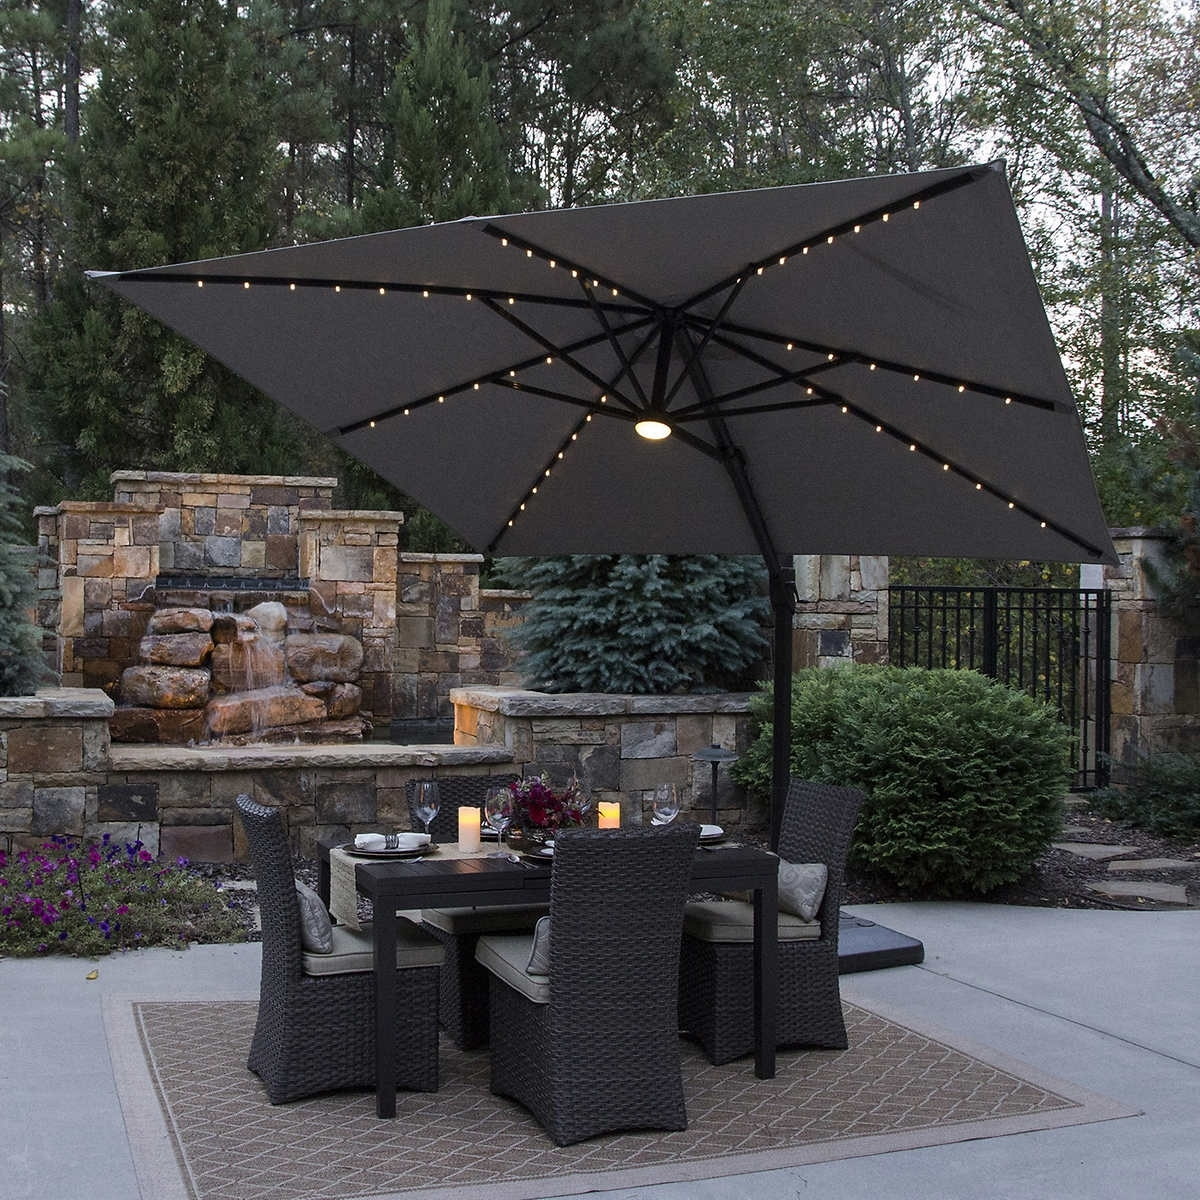 Newest Dark Costco Patio Umbrella : Acvap Homes – Cleaning Costco Patio Intended For Costco Cantilever Patio Umbrellas (View 6 of 20)